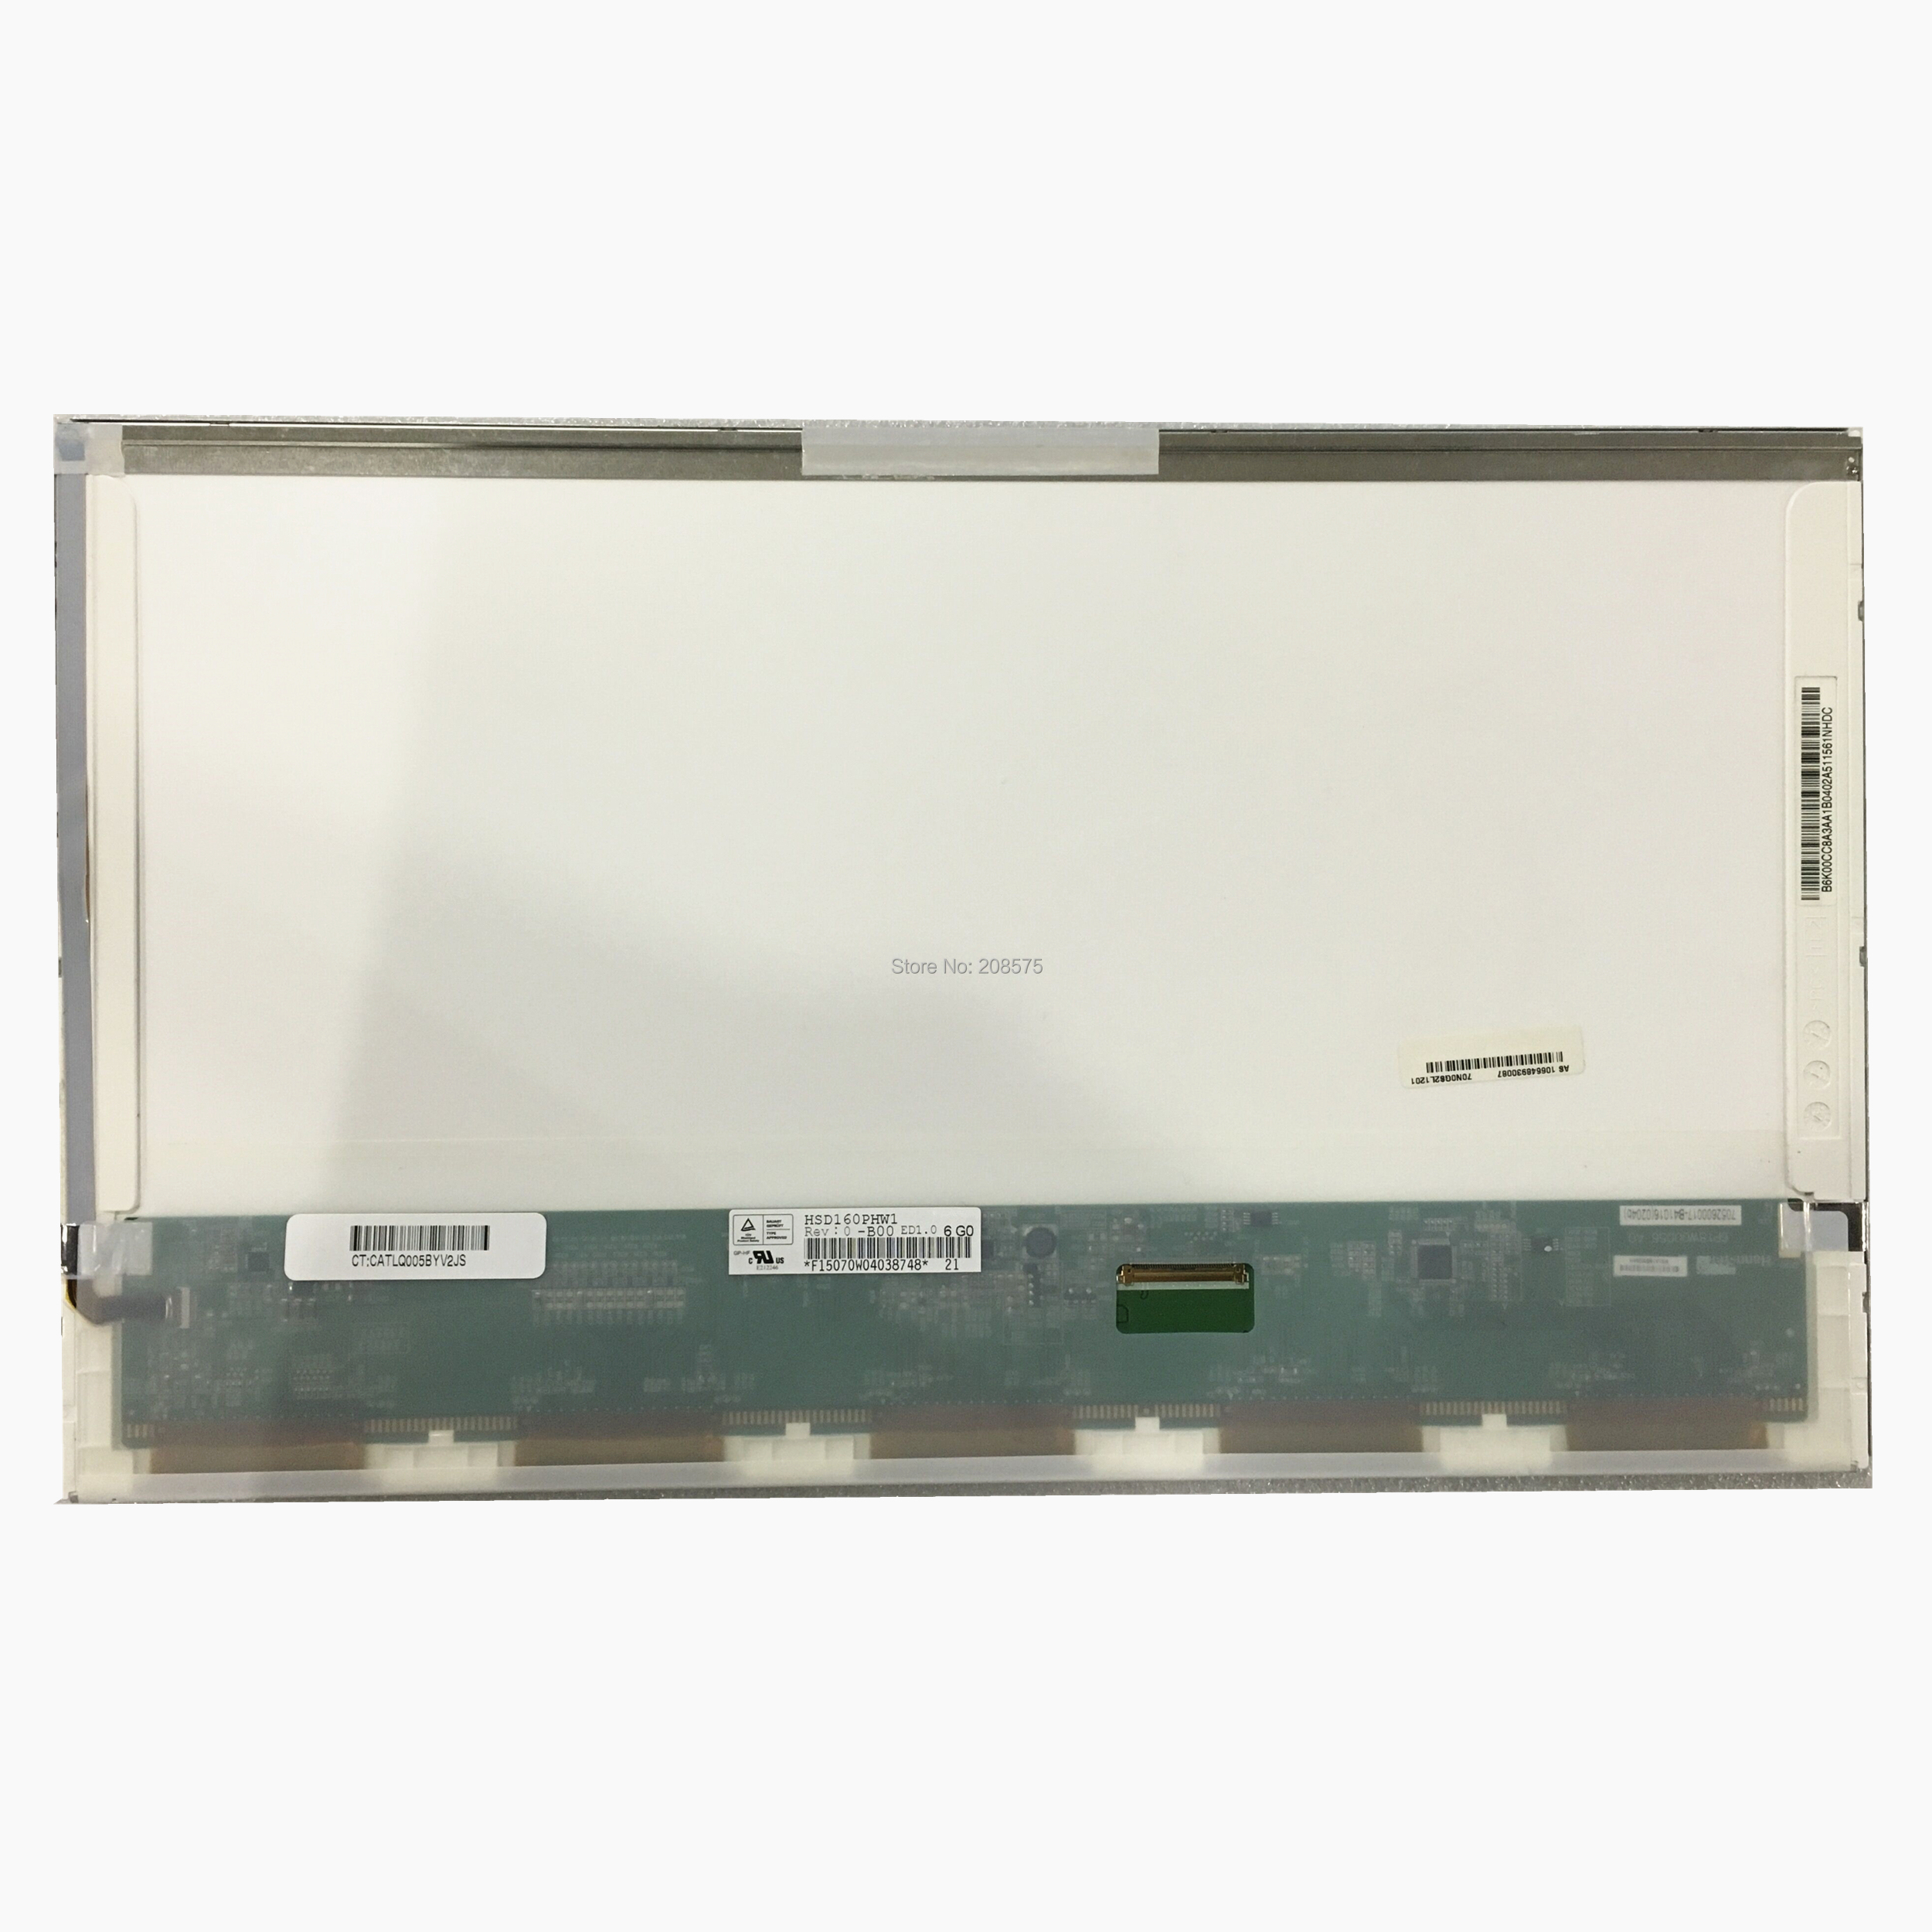 Free Shipping HSD160PHW1 HSD160PHW1 B00 LTN160AT06 16 inch Laptop LCD Screen fit for ASUS N61 N61VG